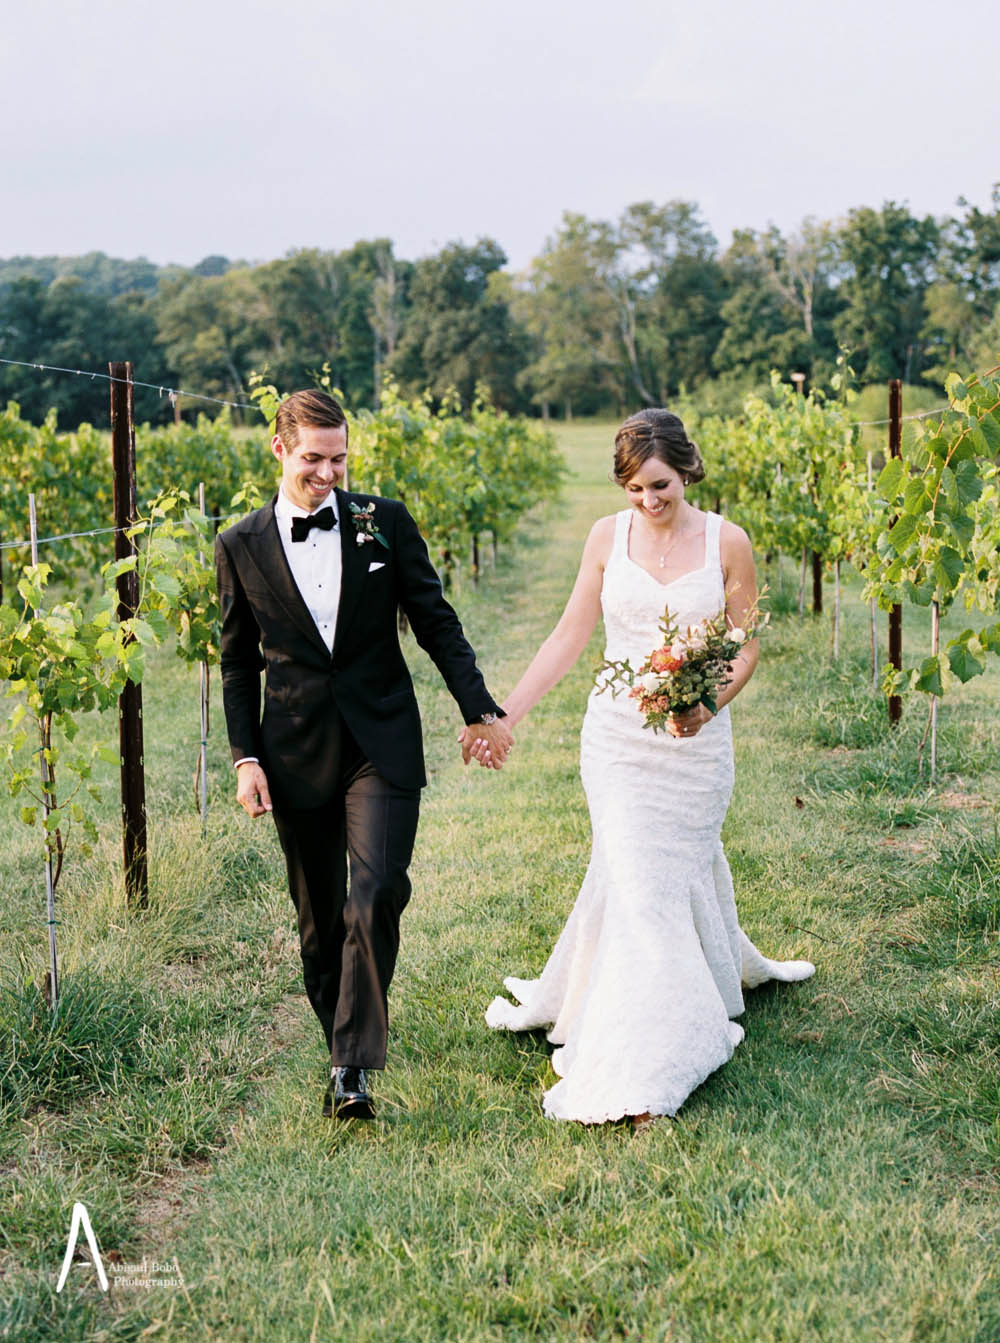 lilac farms at arrington vineyards wedding photography ©2015abigailbobophotography-48 (1).jpg